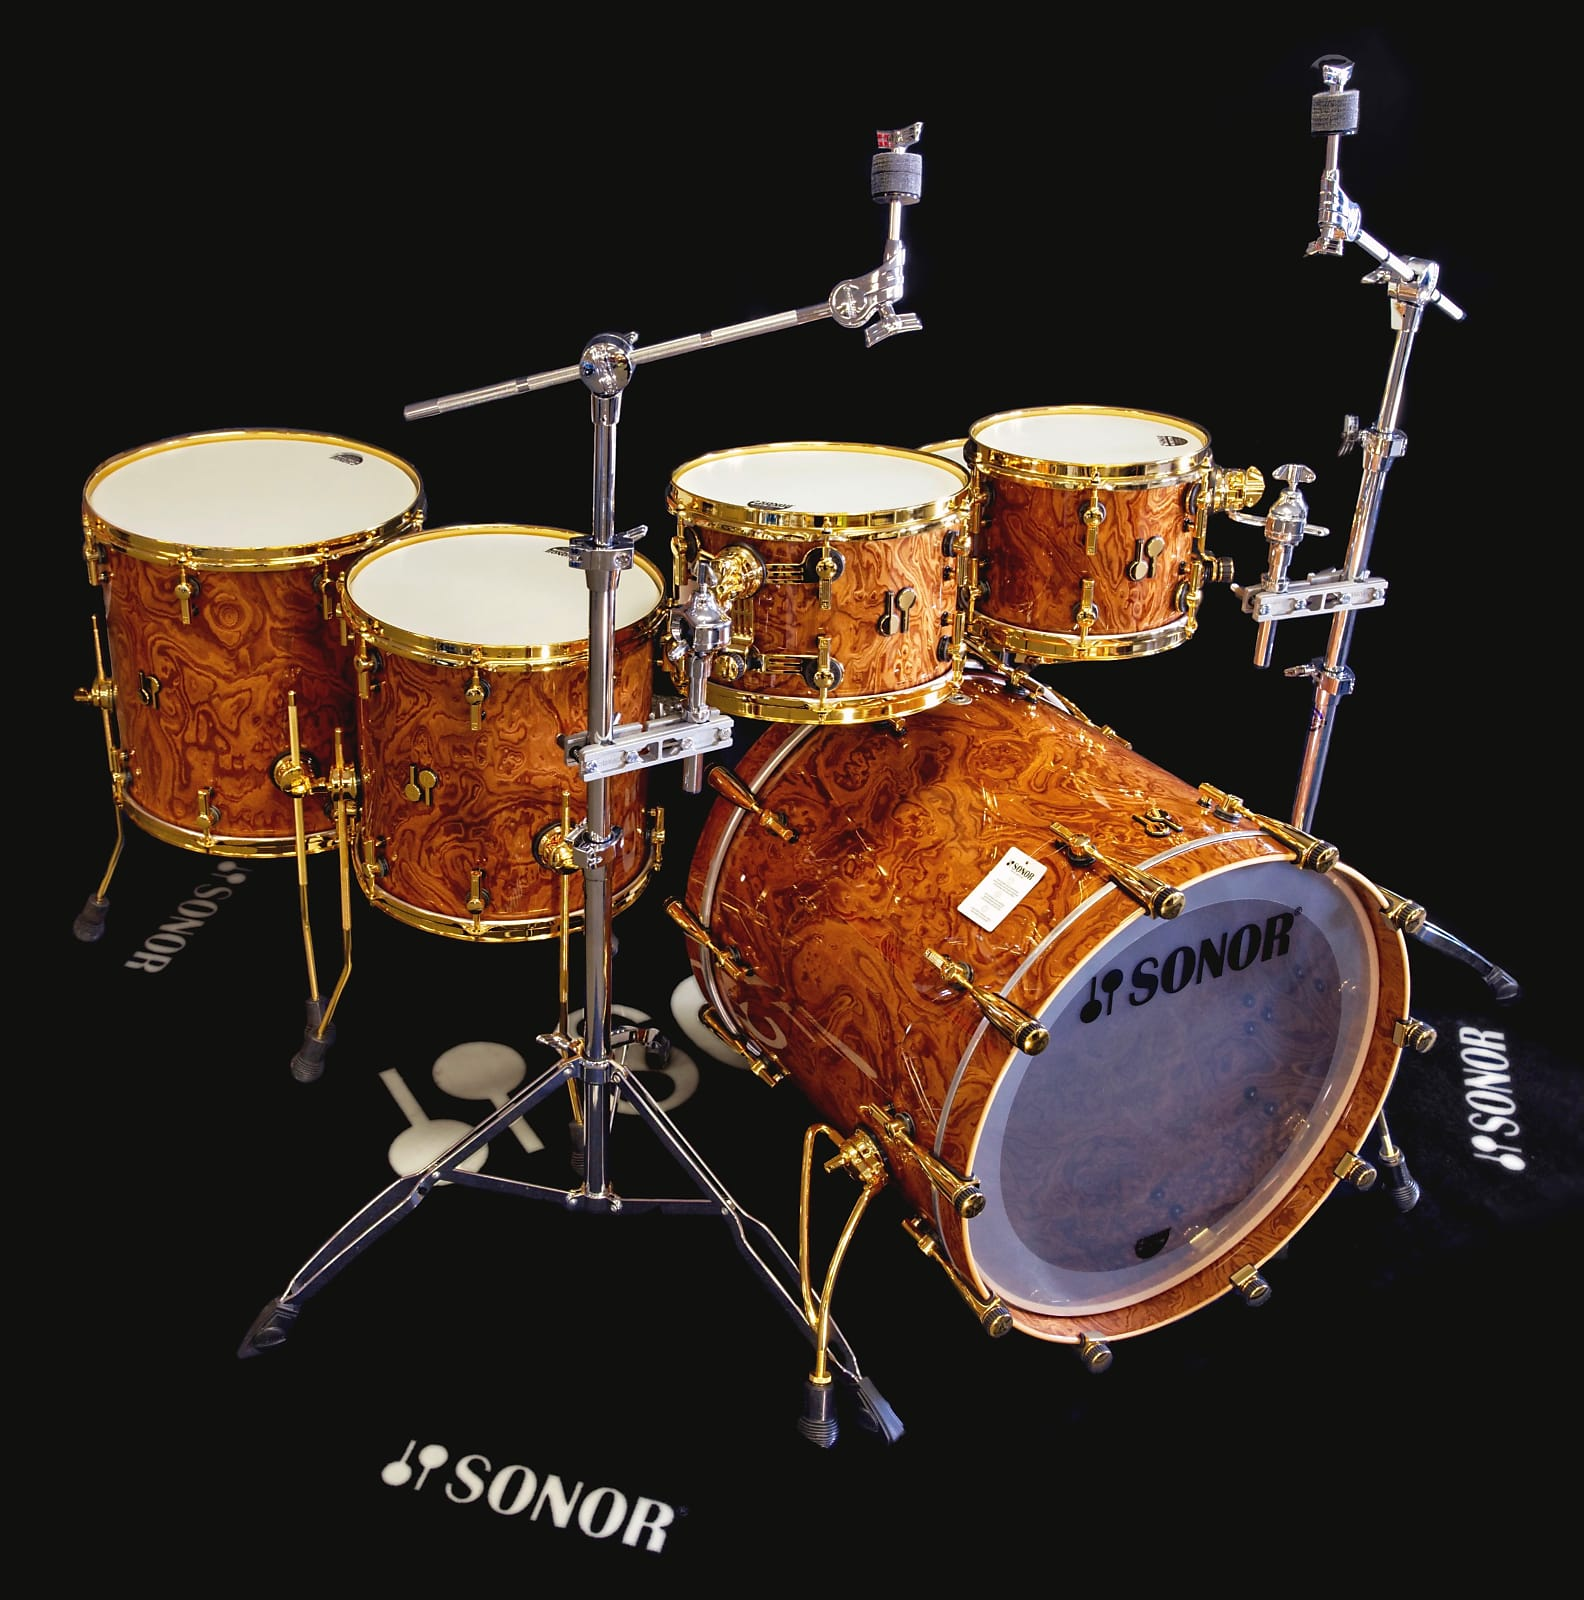 Sonor SQ2 5pc Shell pack - Walnut Roots with Gold Hardware 10,12,14,16,22